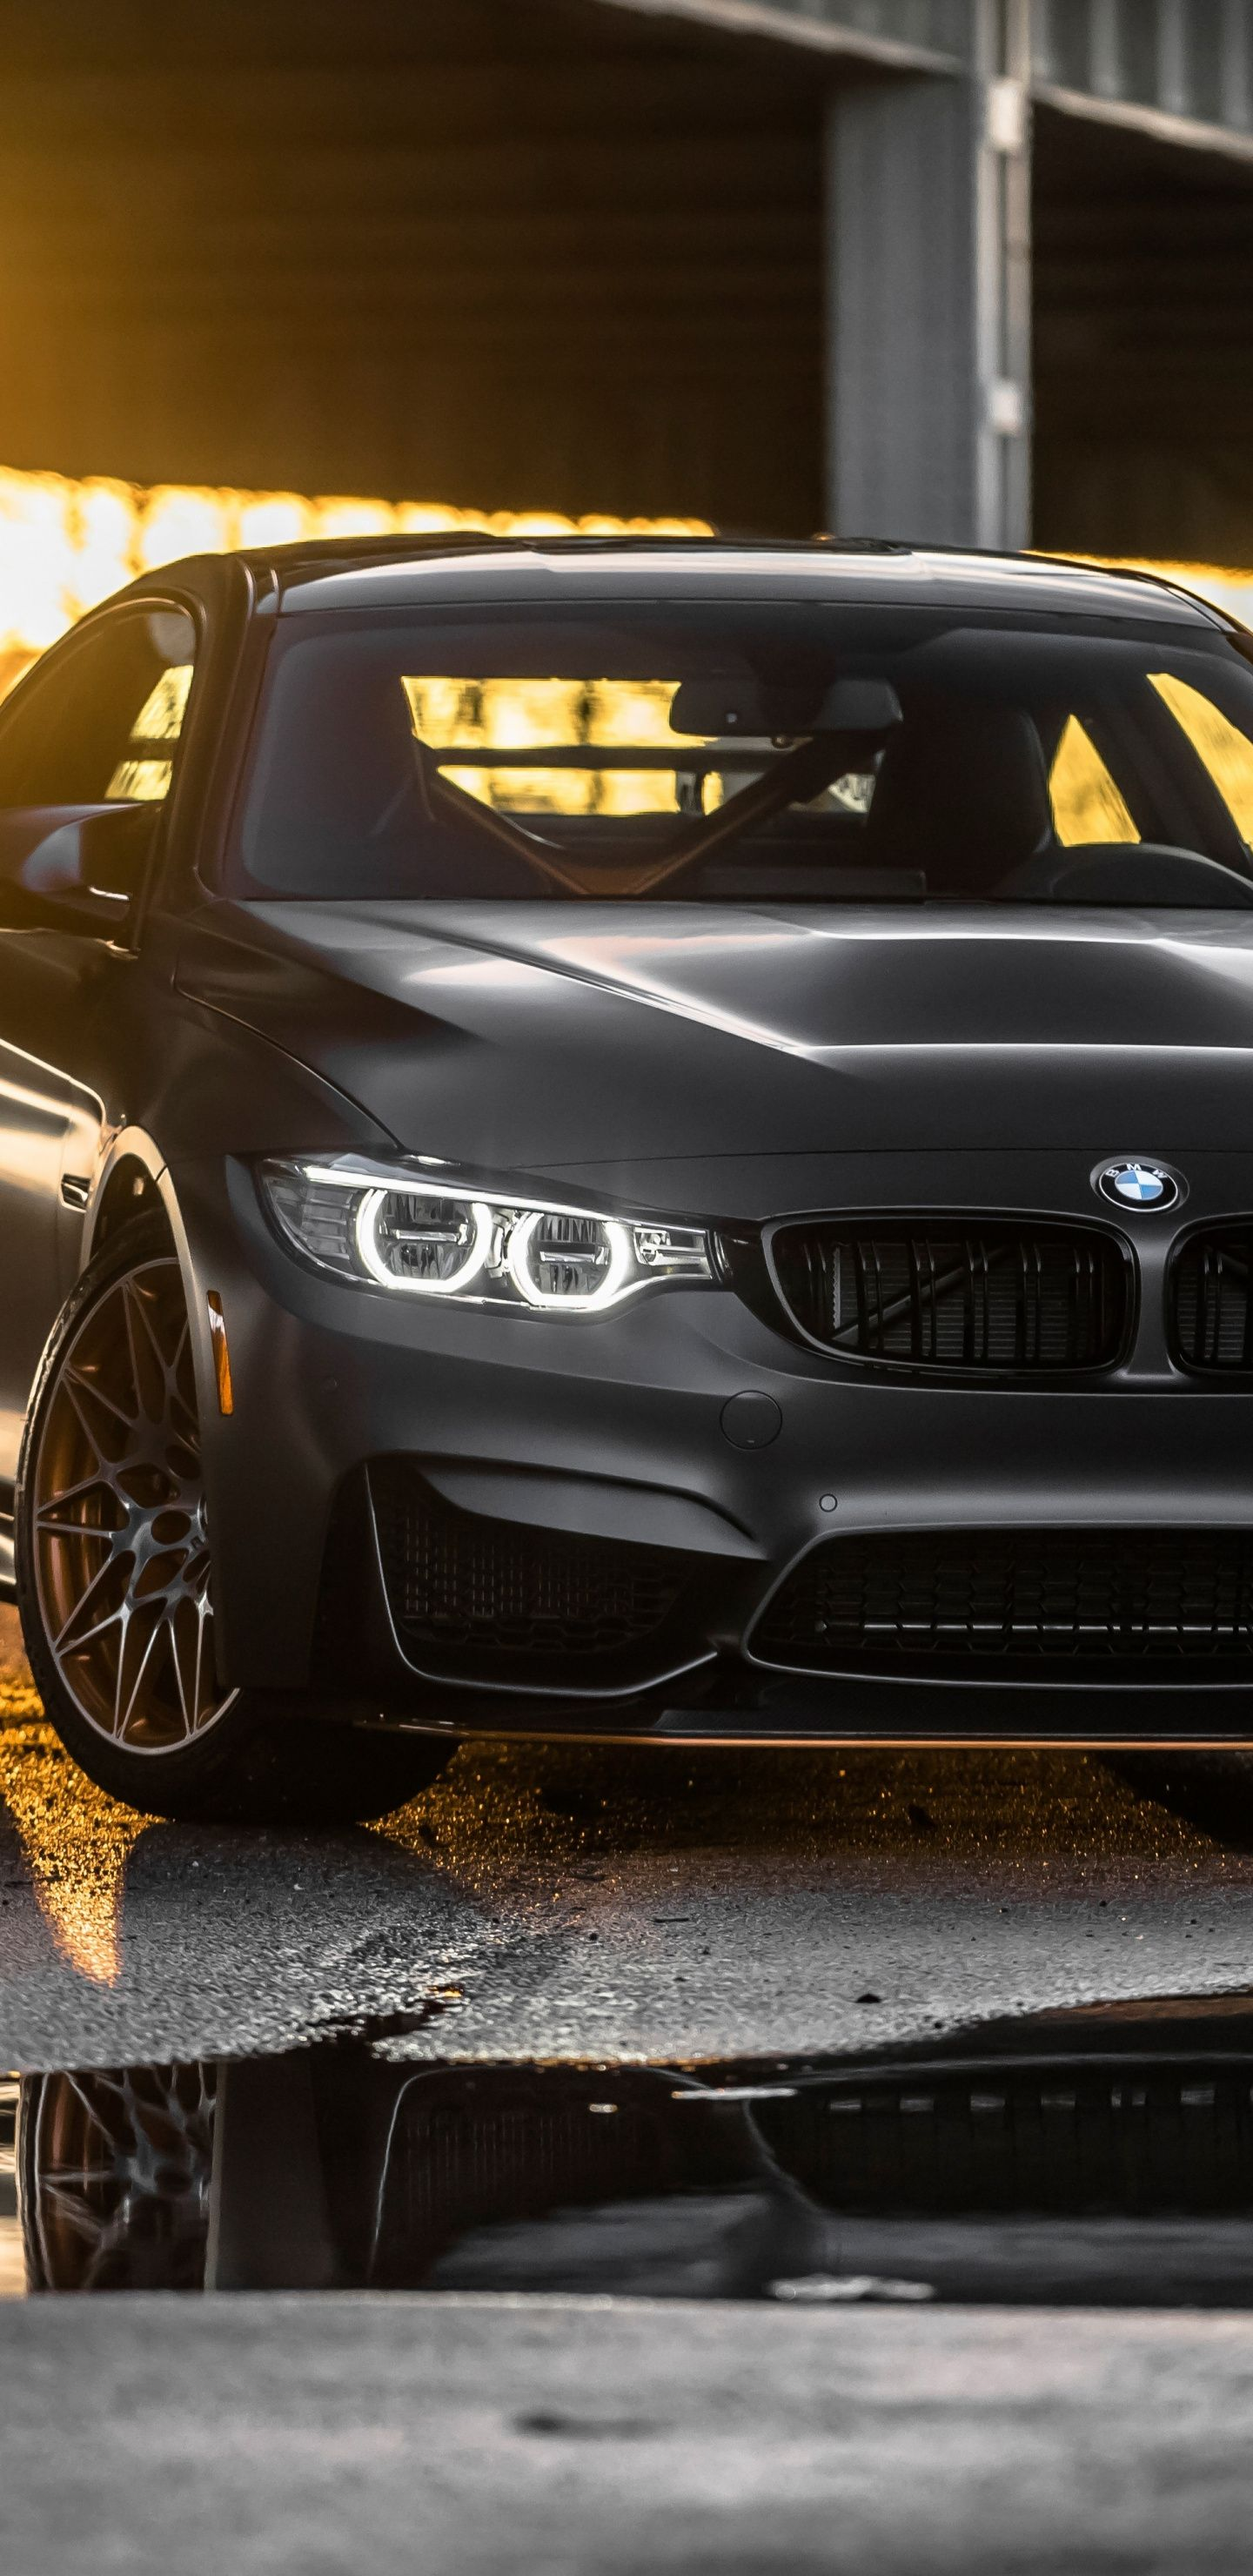 Bmw M4 Gts Black Luxury Car 1440x2960 Wallpaper Carros De